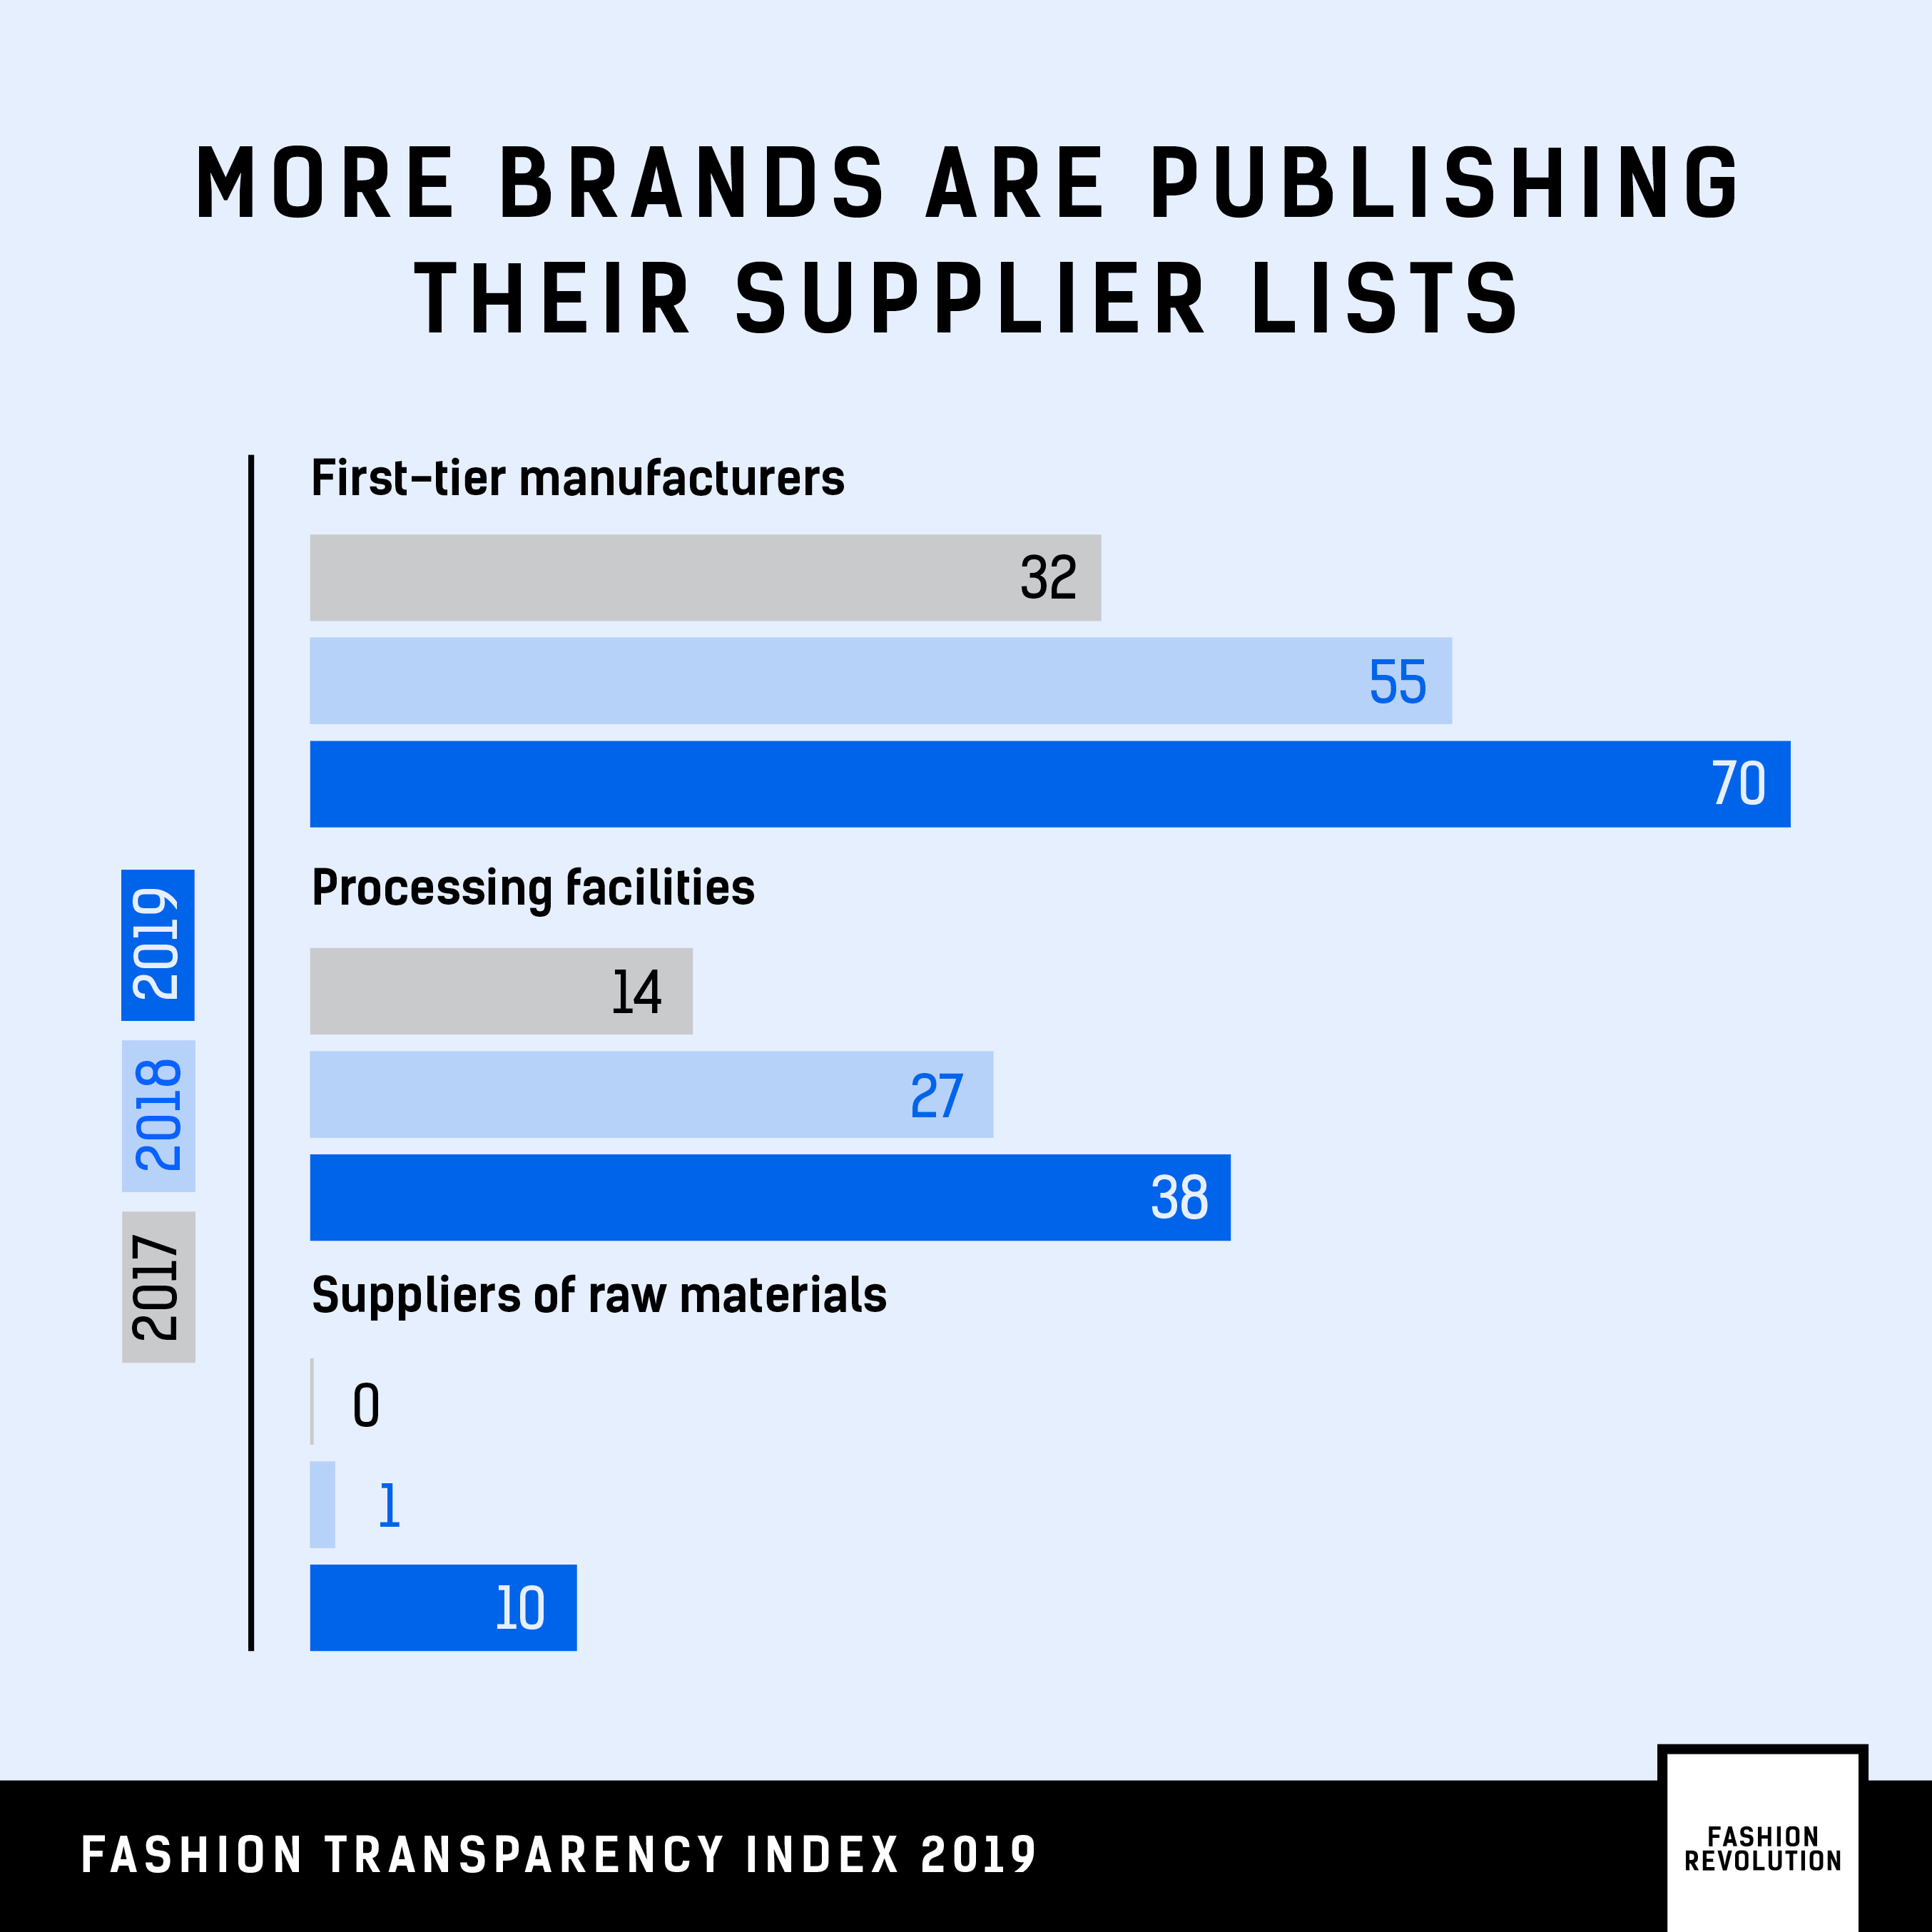 WHY TRANSPARENCY MATTERS - Fashion Revolution : Fashion